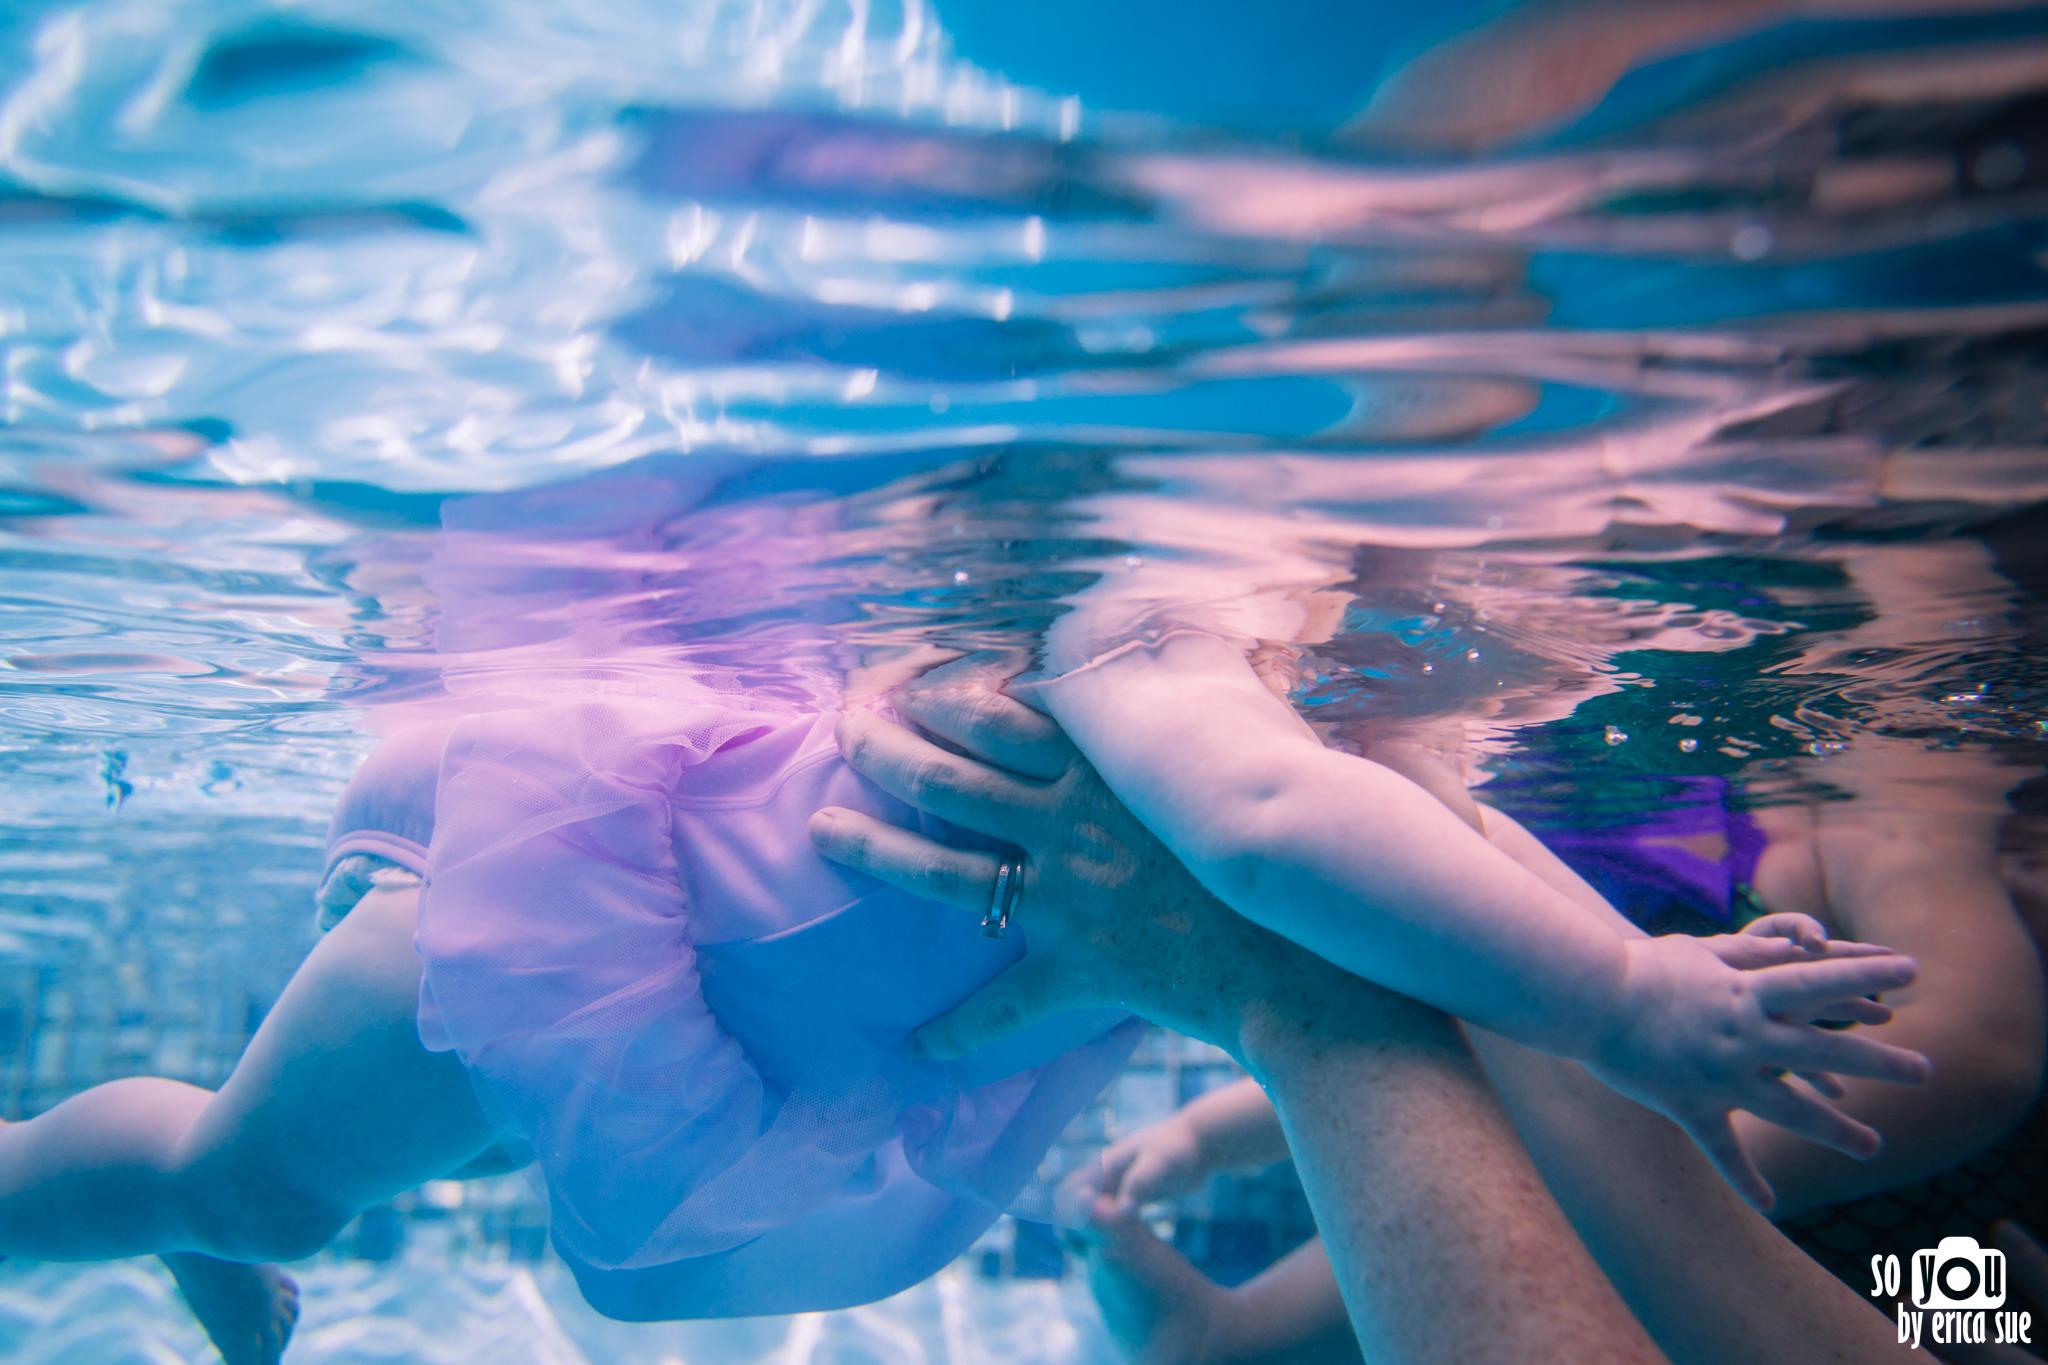 underwater-swim-family-photography-ft-lauderdale-so-you-by-erica-sue-1664.jpg